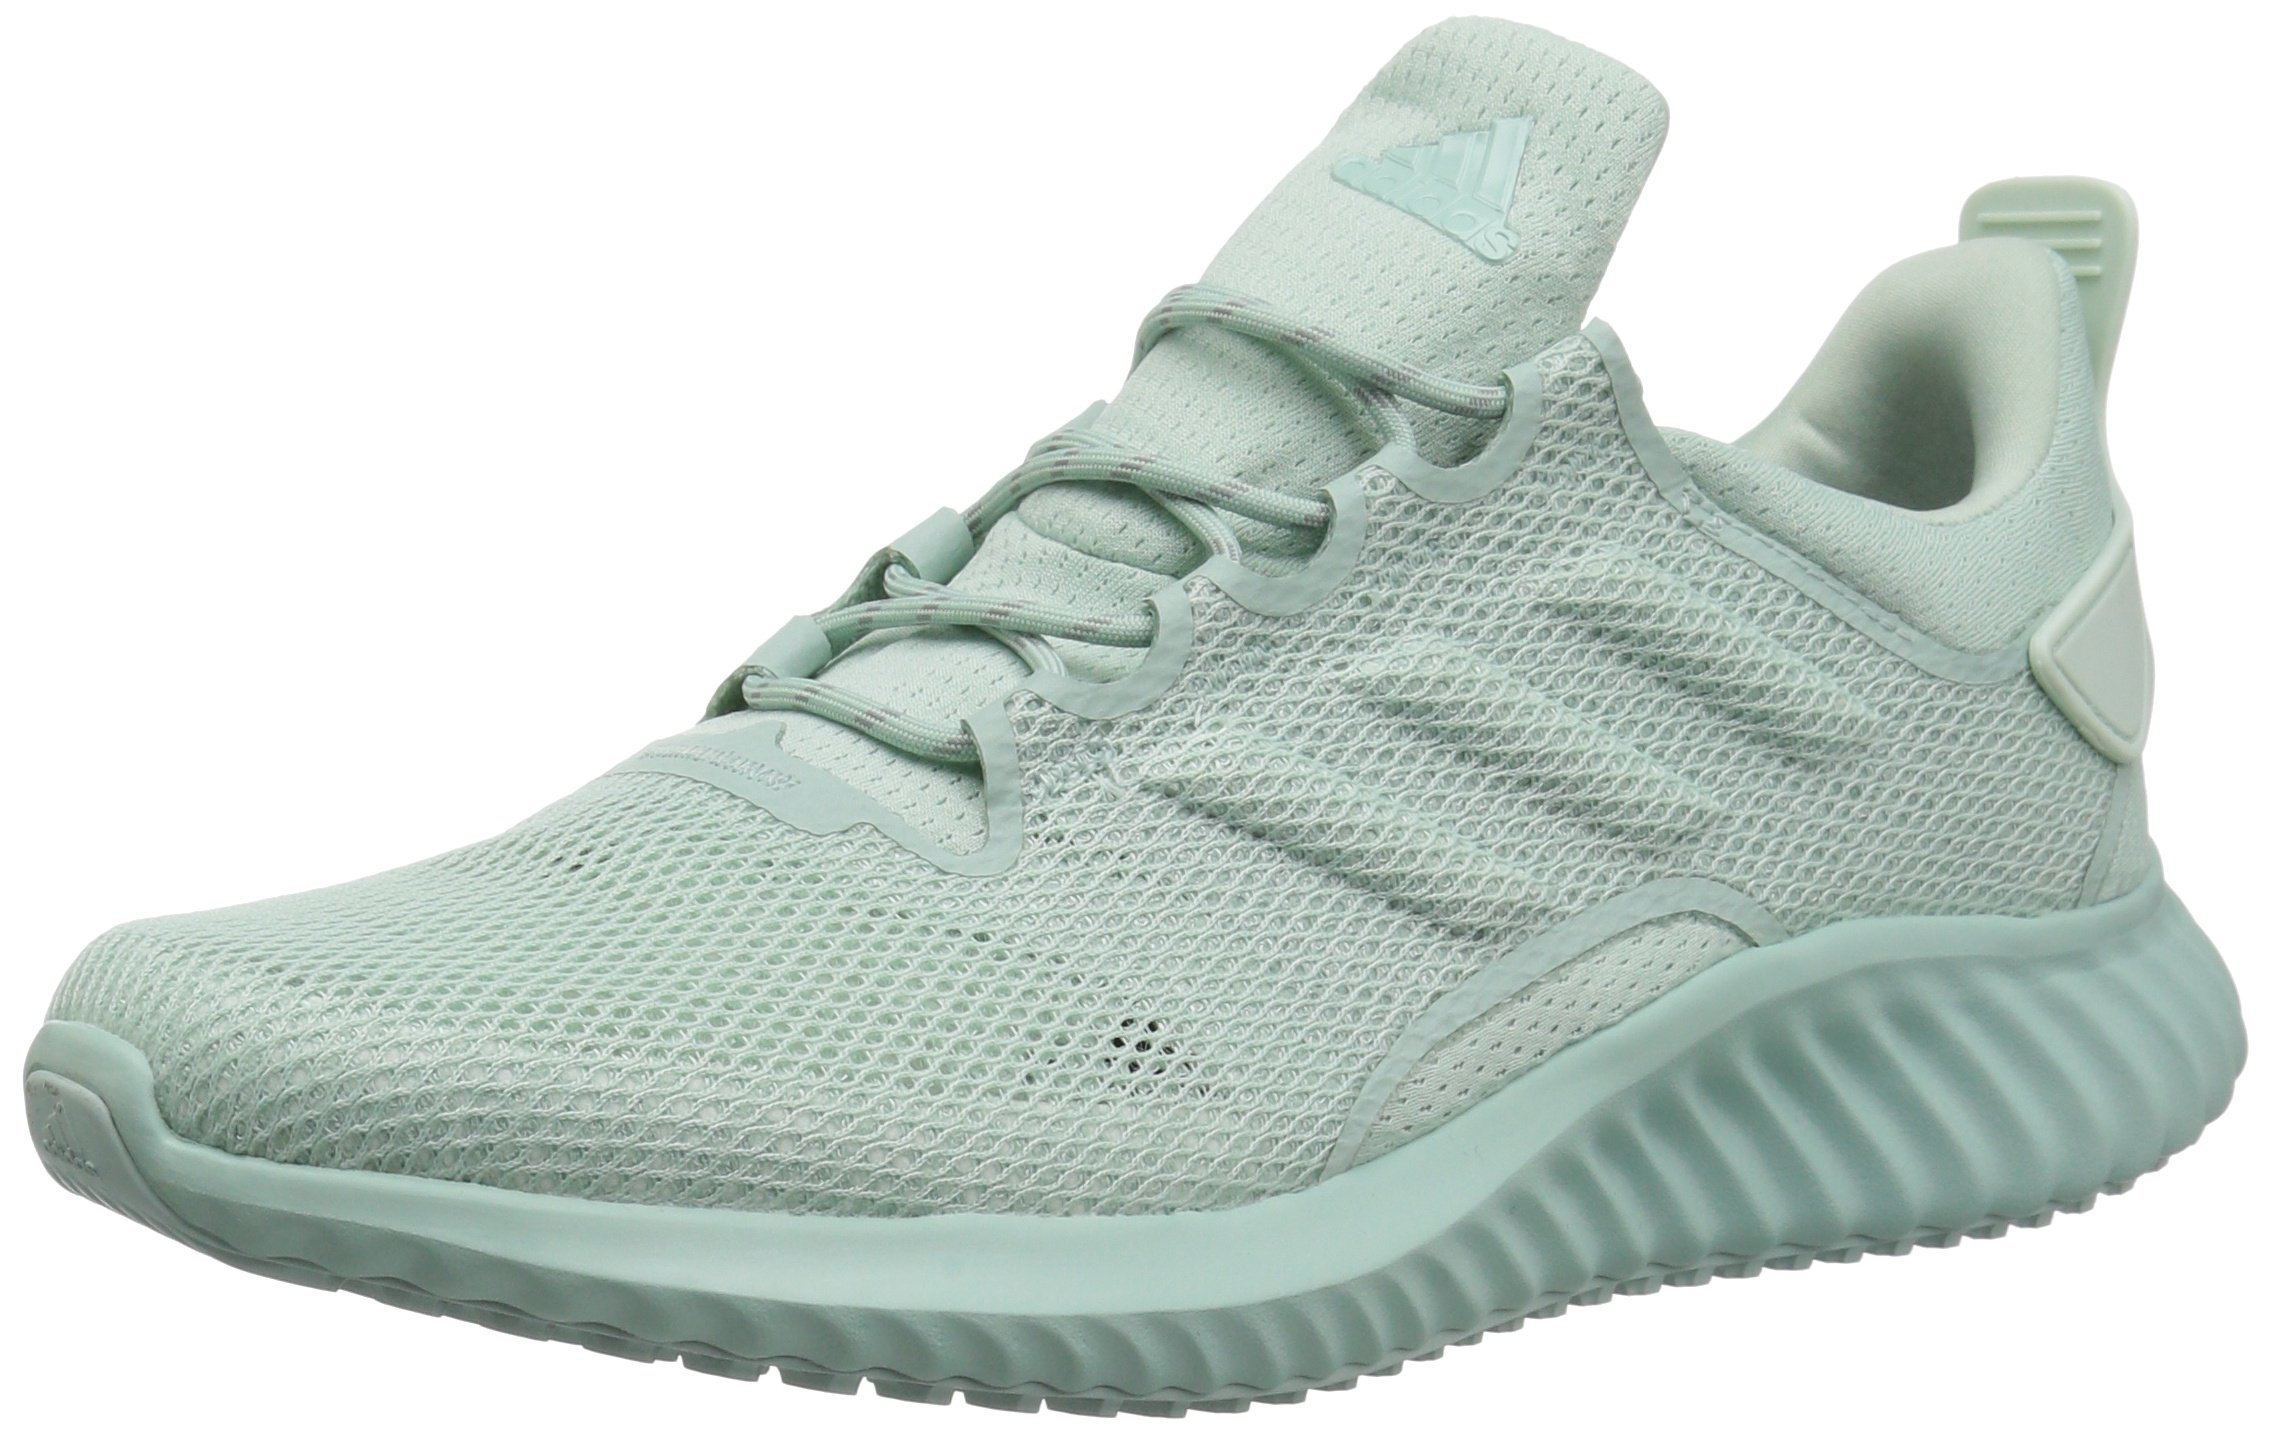 64b26a336 Galleon - Adidas Men s Alphabounce CR CC Running Shoe Ash Green